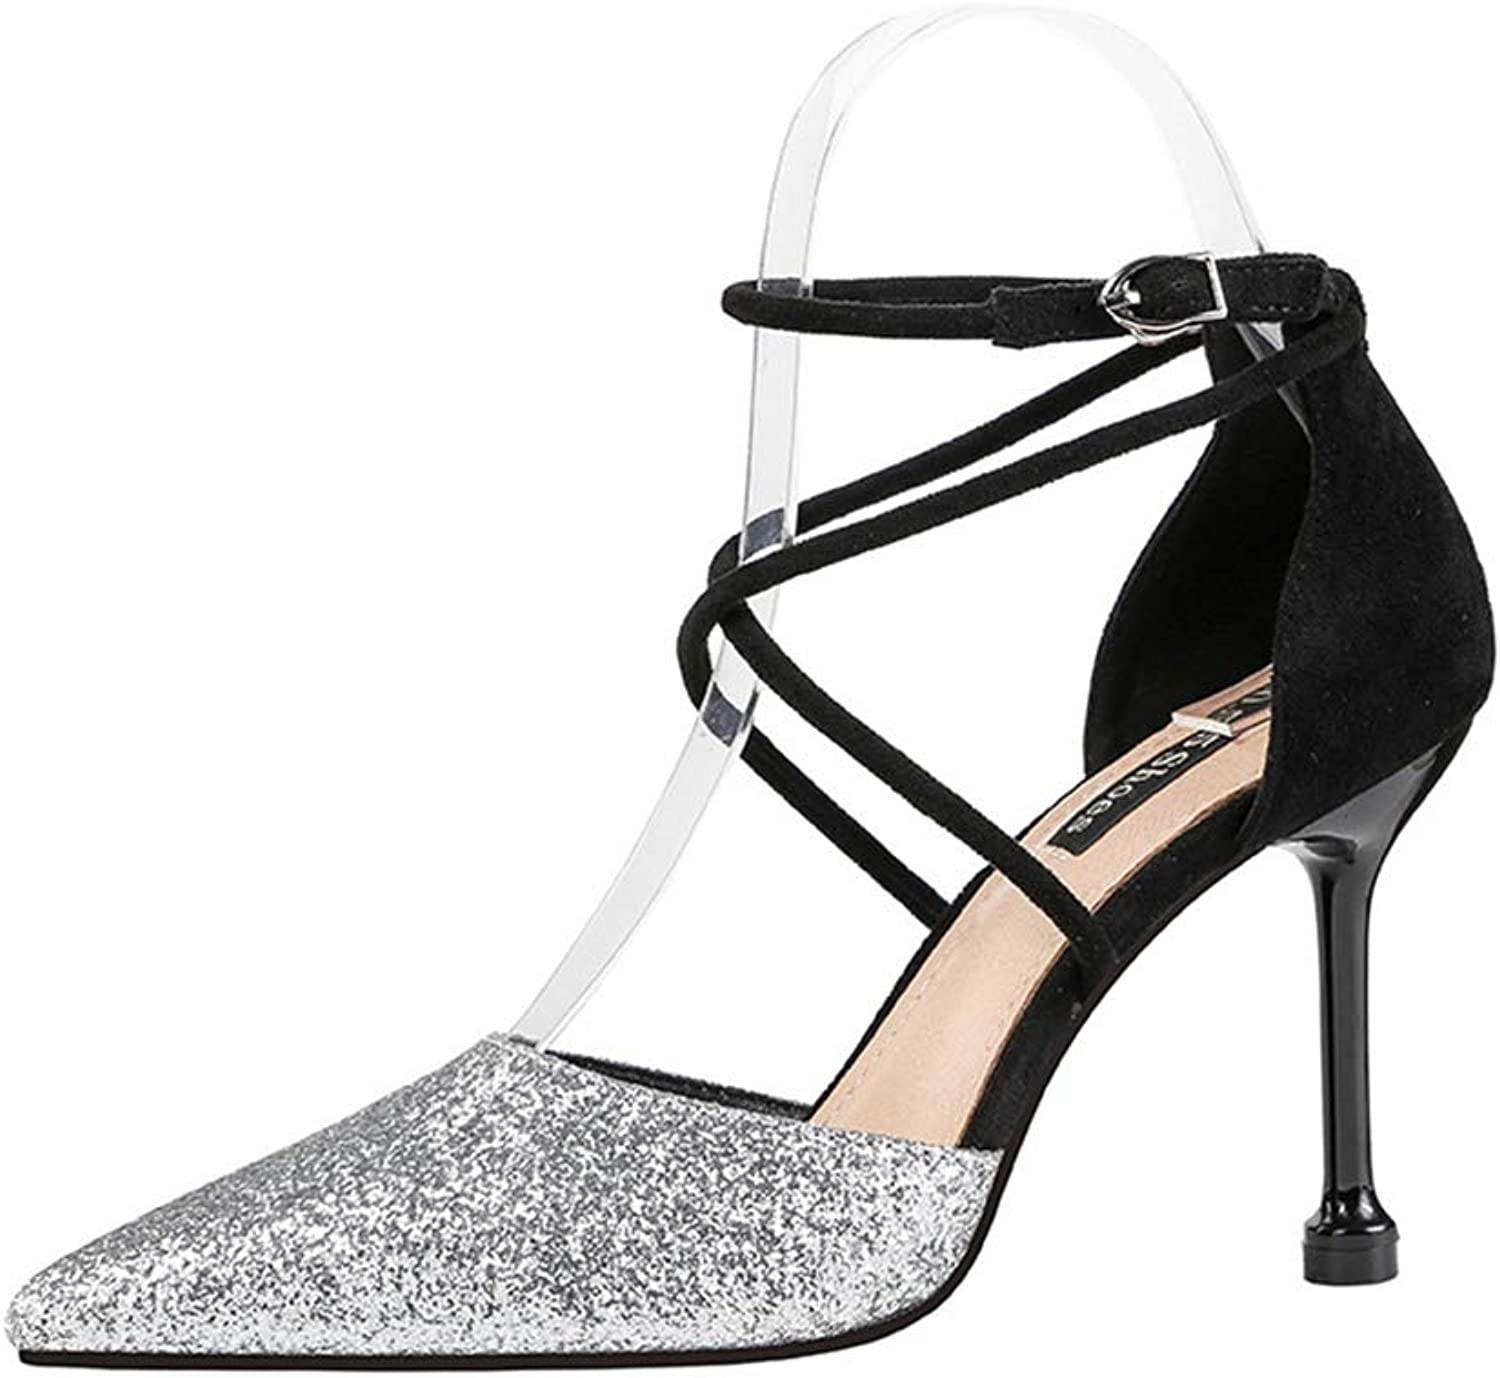 Women's High Heels 2019 New PU Sexy Pointed Stiletto shoes Ankle Buckle Nightclub Sequin Sandals Red Black gold Silver,B,36